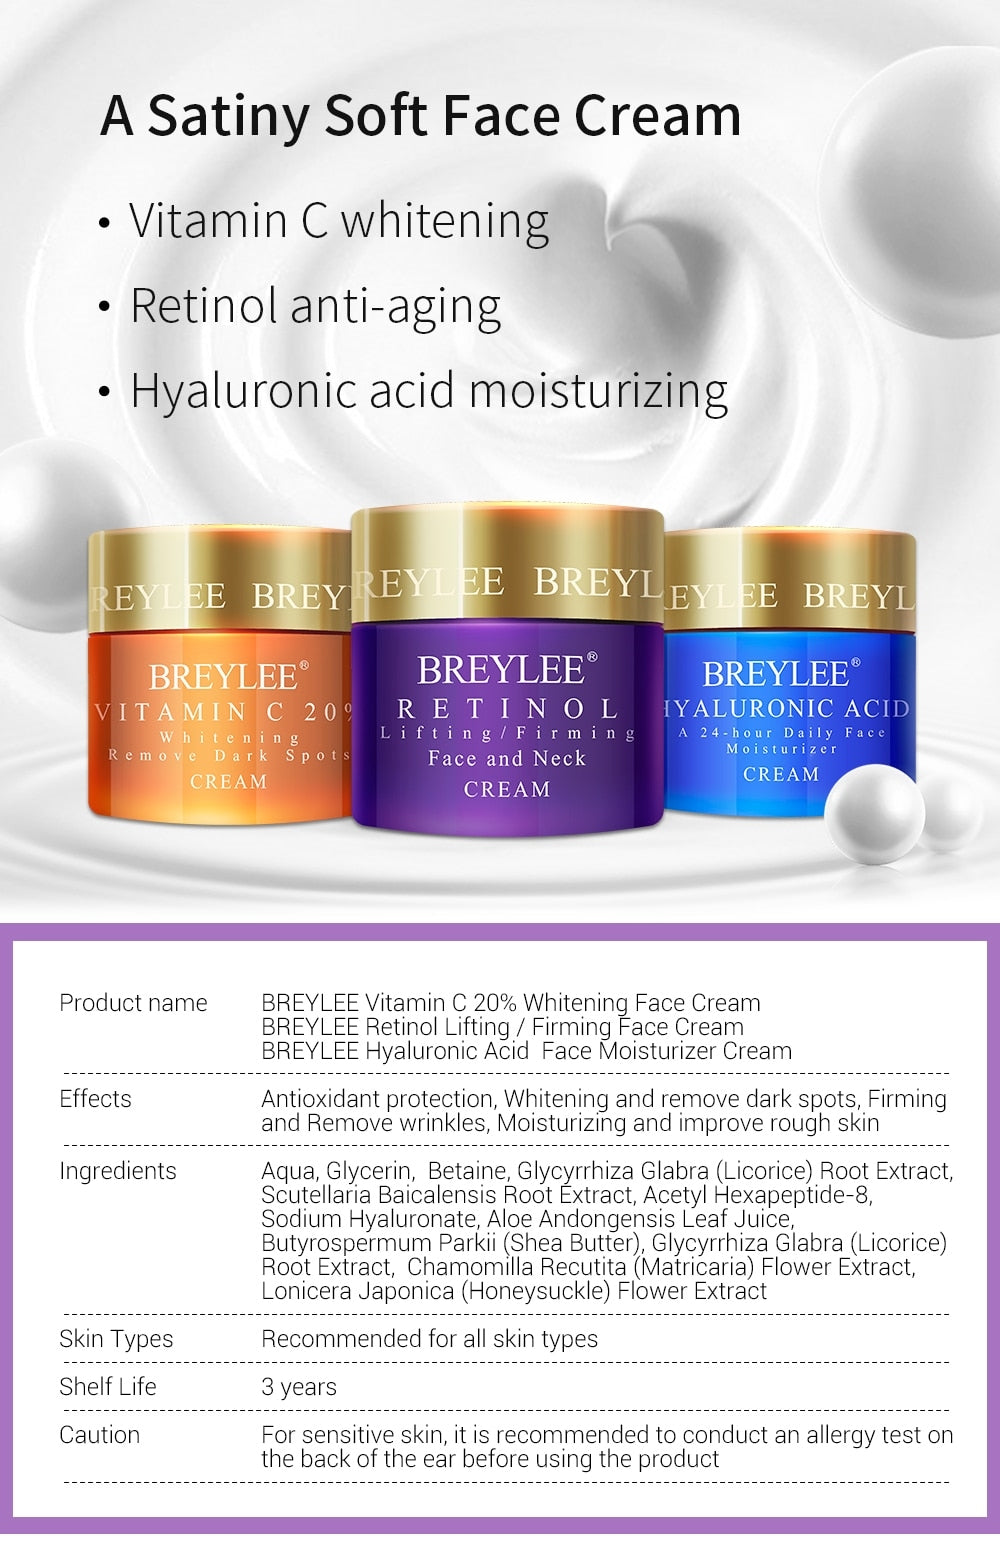 BREYLEE rejuvenating face cream